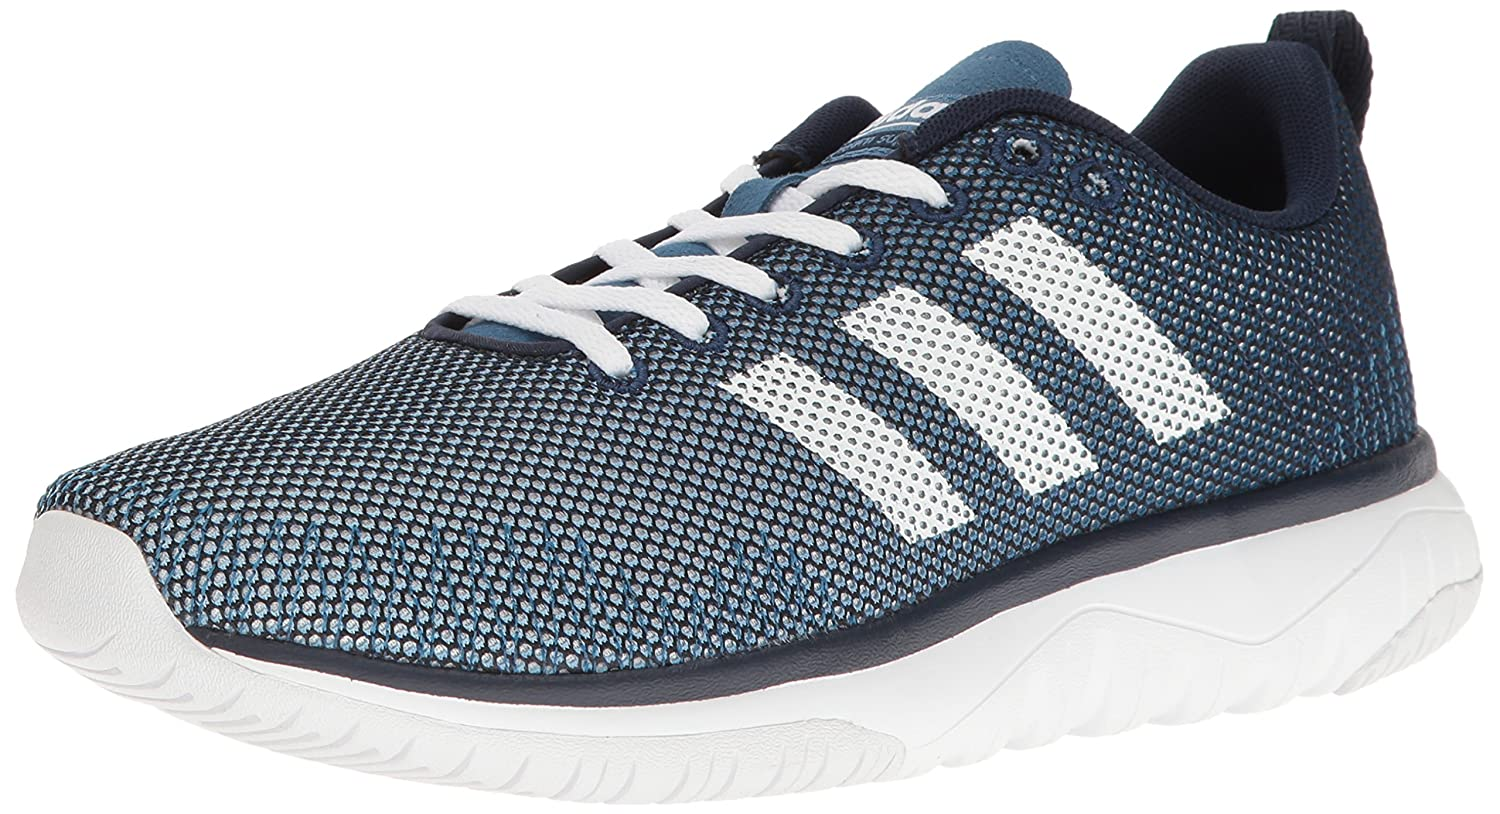 adidas Men's Cloudfoam Super Flex Running Shoe B01HSLB05C 13 D(M) US|Navy/White/Blue